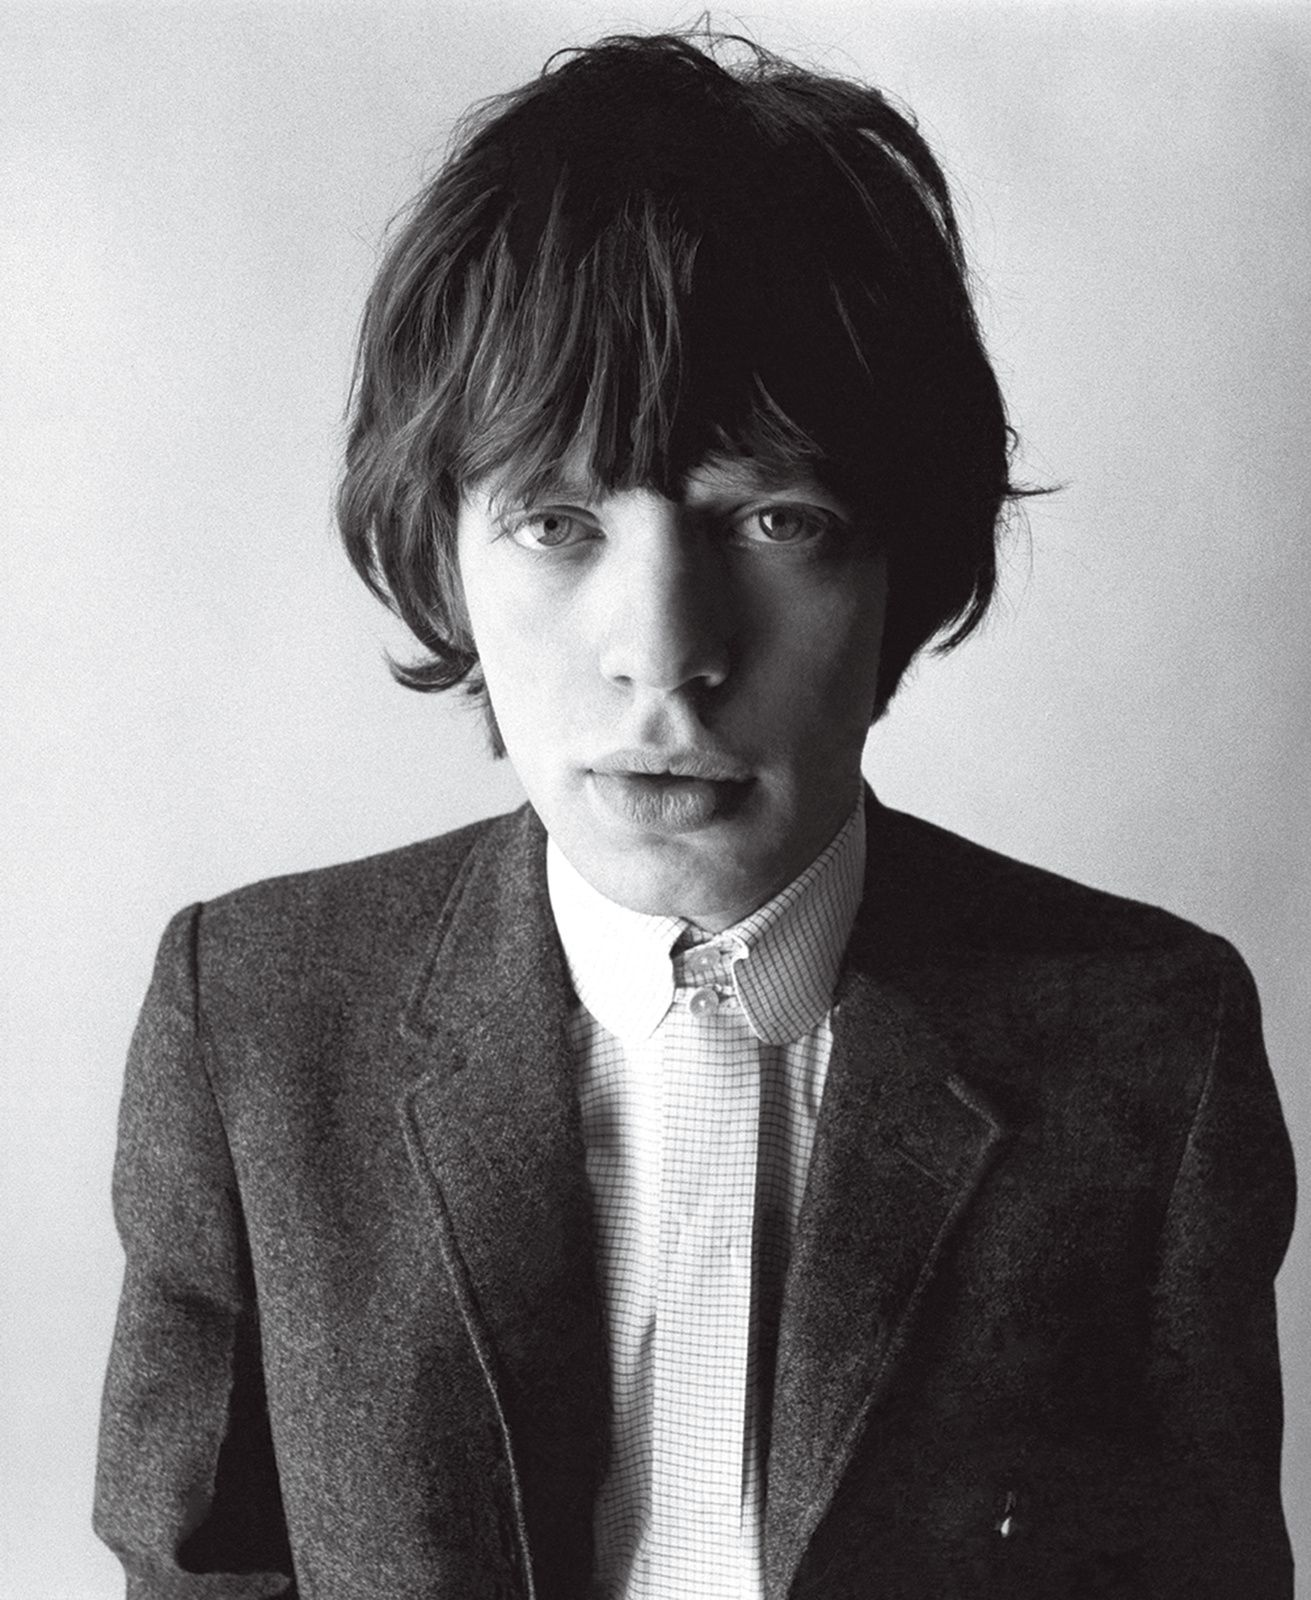 Mick Jagger, The Rolling Stones - Photographed by David Bailey, Vogue, July 1, 1964